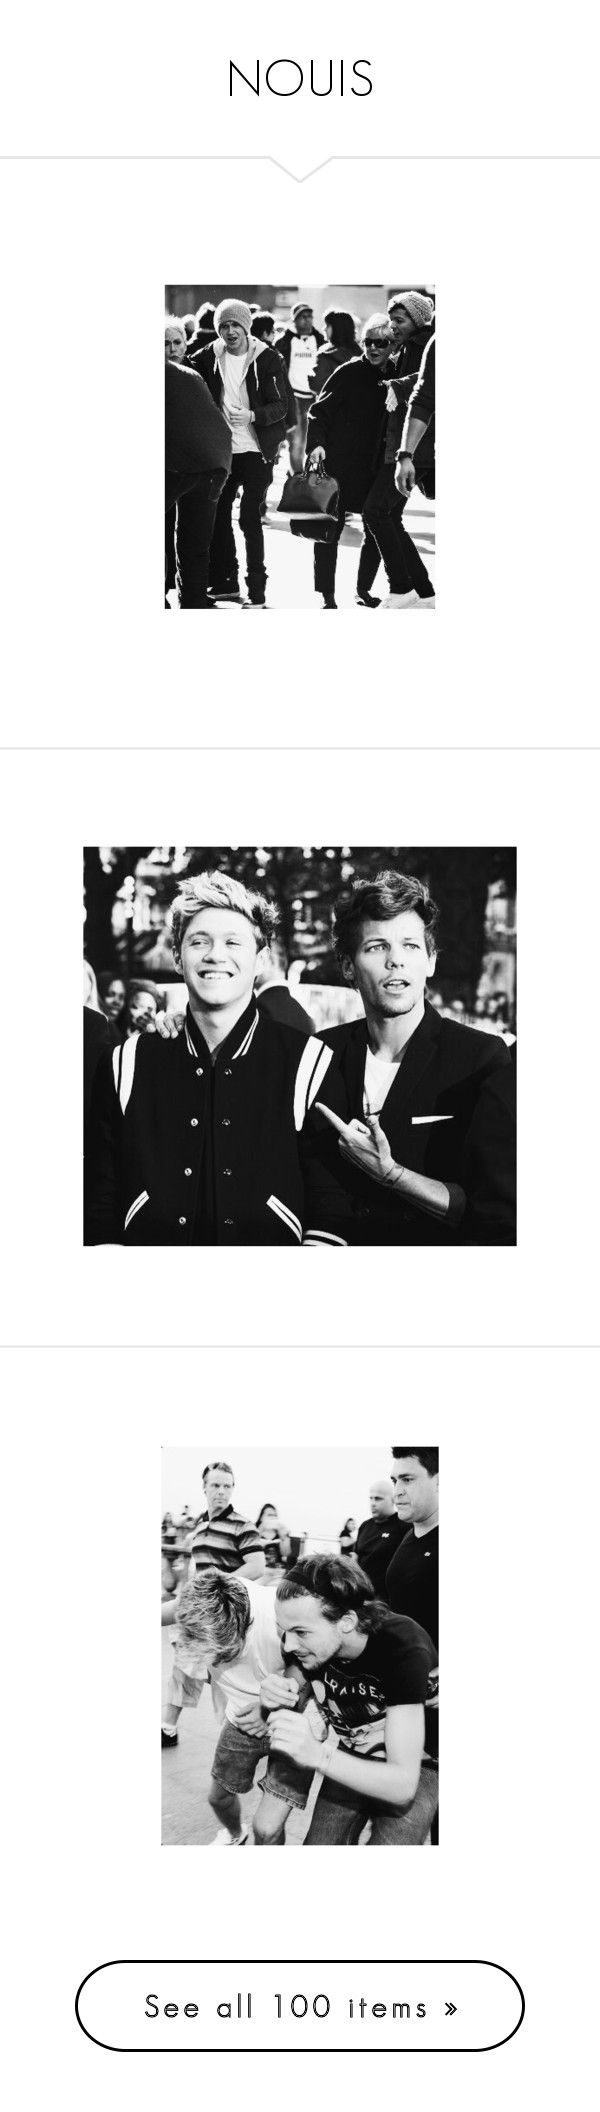 """NOUIS"" by feels-like-snow-in-september ❤ liked on Polyvore featuring marinaluvsu, edenandreaxo, pamelalook, one direction, pictures, home, home decor, office accessories, niall horan and 1d"